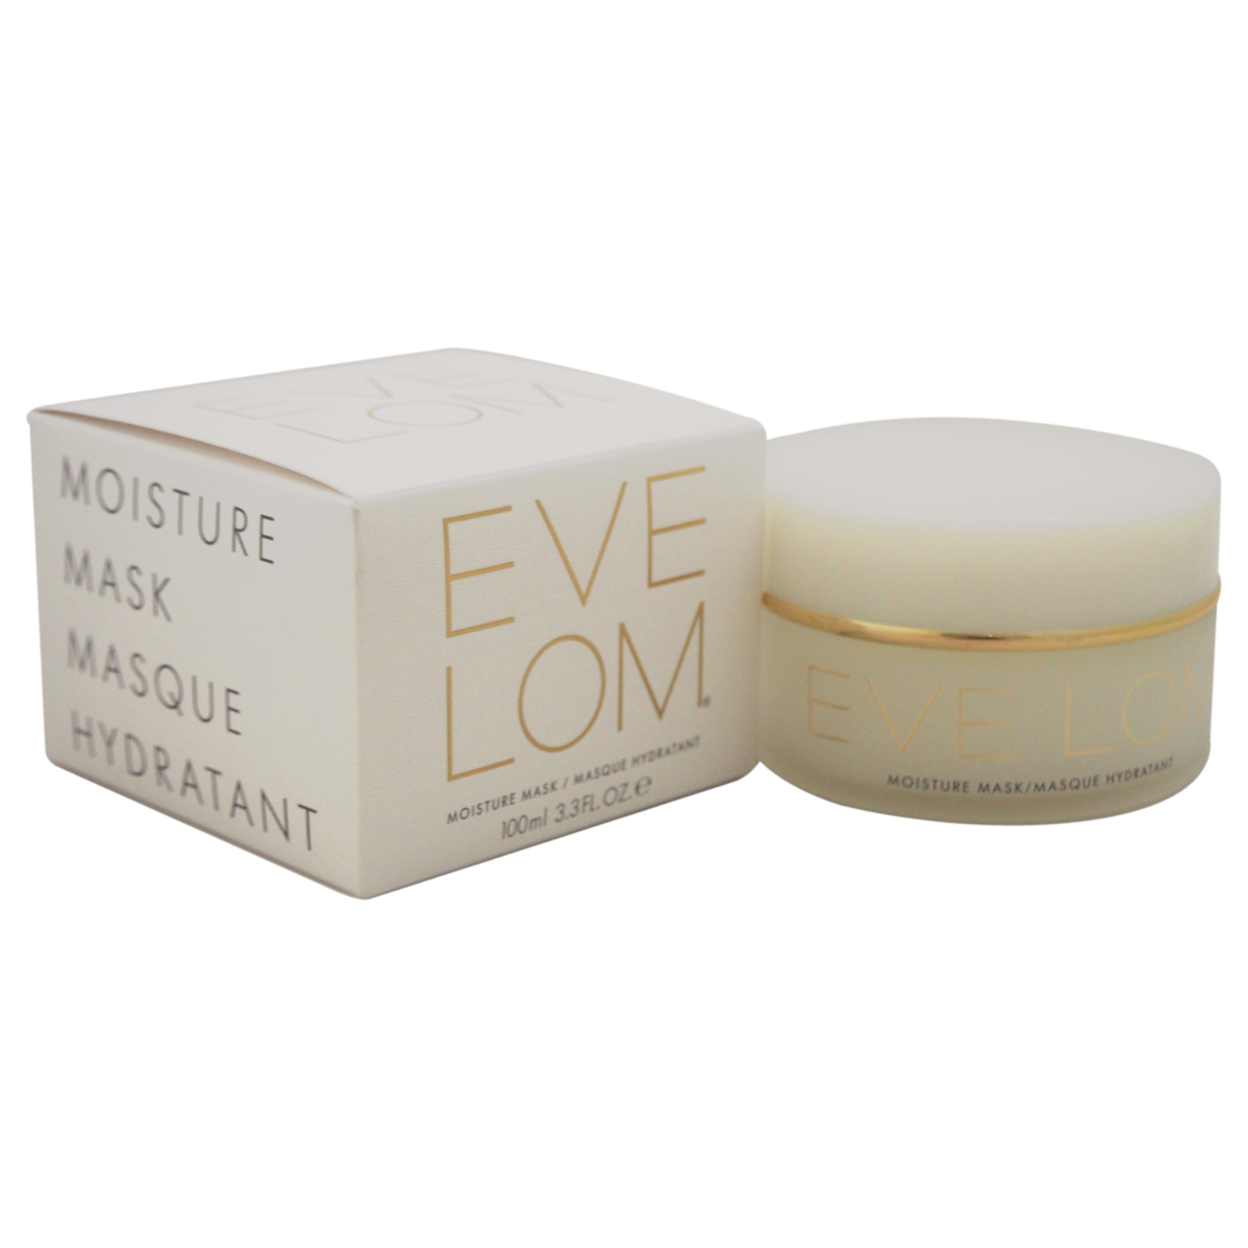 Moisture Mask by Eve Lom for Unisex - 3.3 oz Mask домкрат lom 1550271